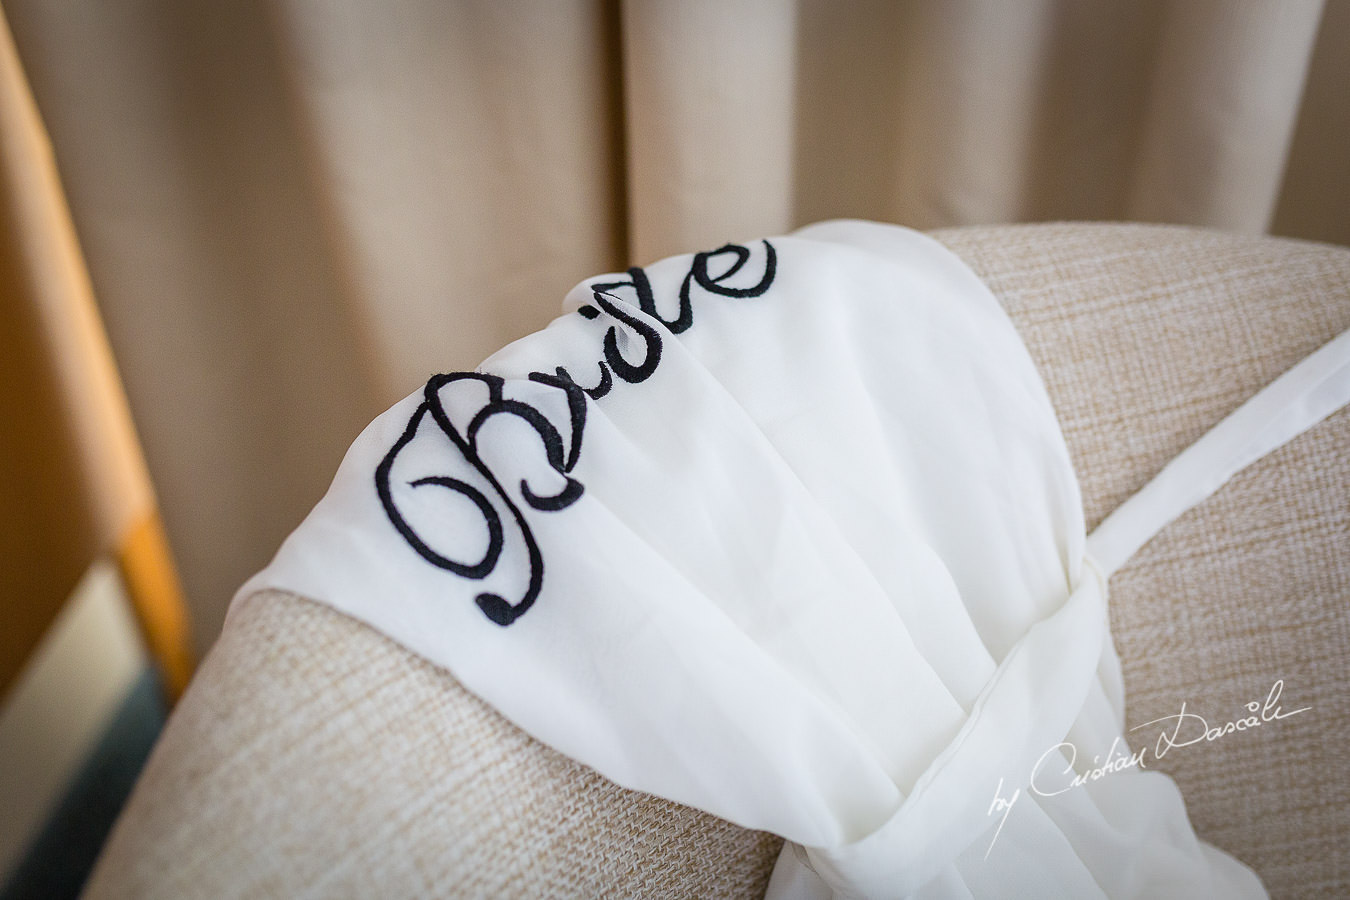 Bride's outfit photographed by Cristian Dascalu at Athena Beach Hotel in Paphos, Cyprus, during a symbolic wedding.